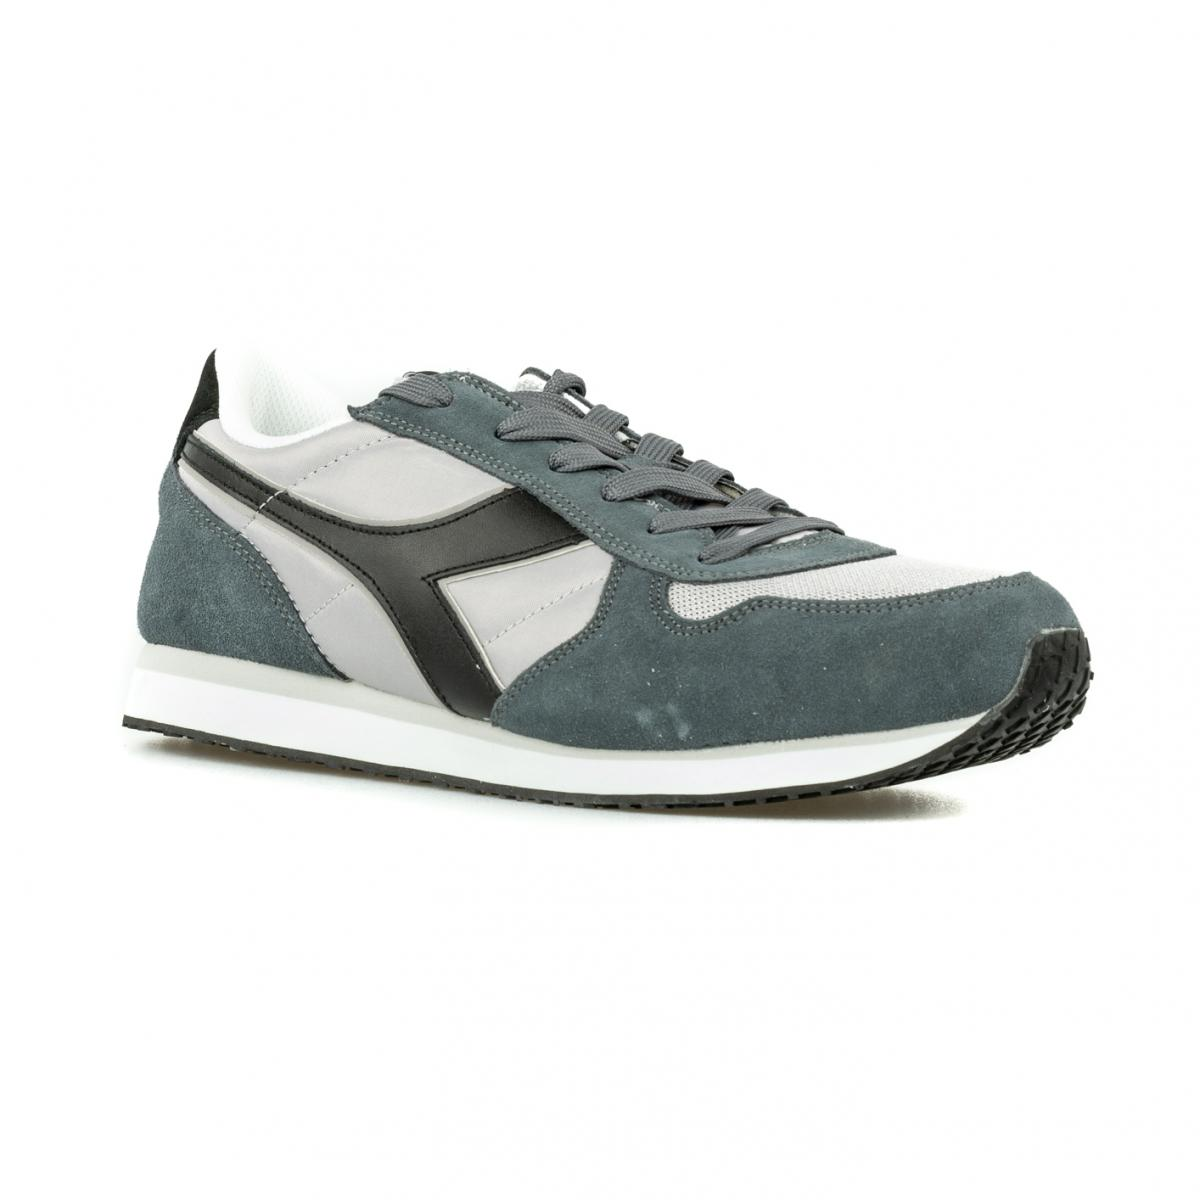 SCARPA UOMO DIADORA A K-RUN II 101.170823 01 C4743 PALOMA GREY/CASTLE ROCK